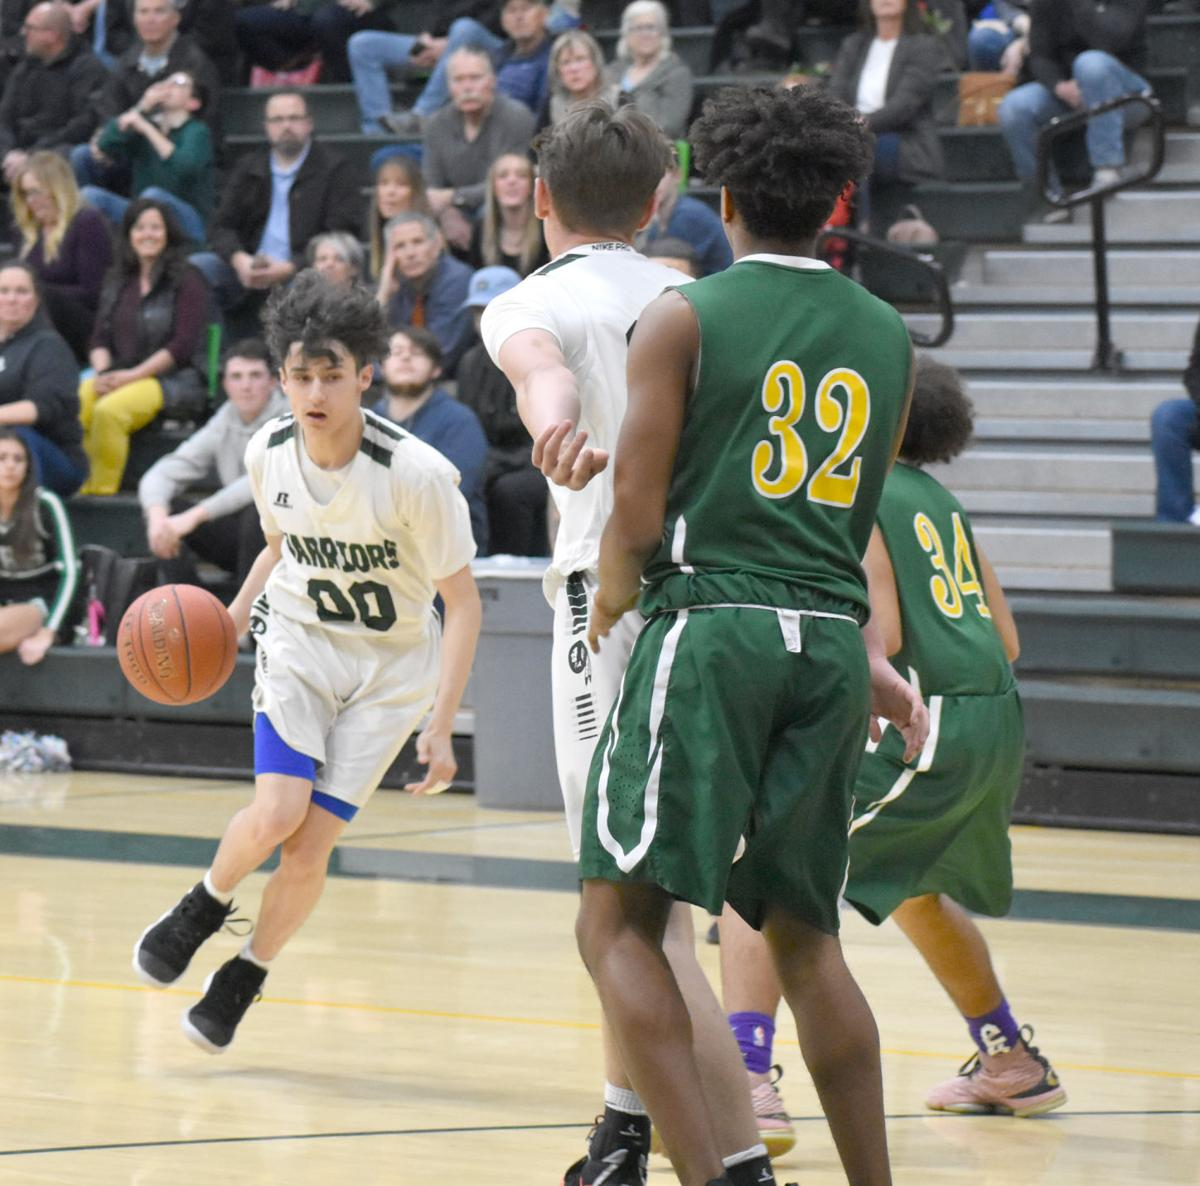 Boys basketball_0314.jpg